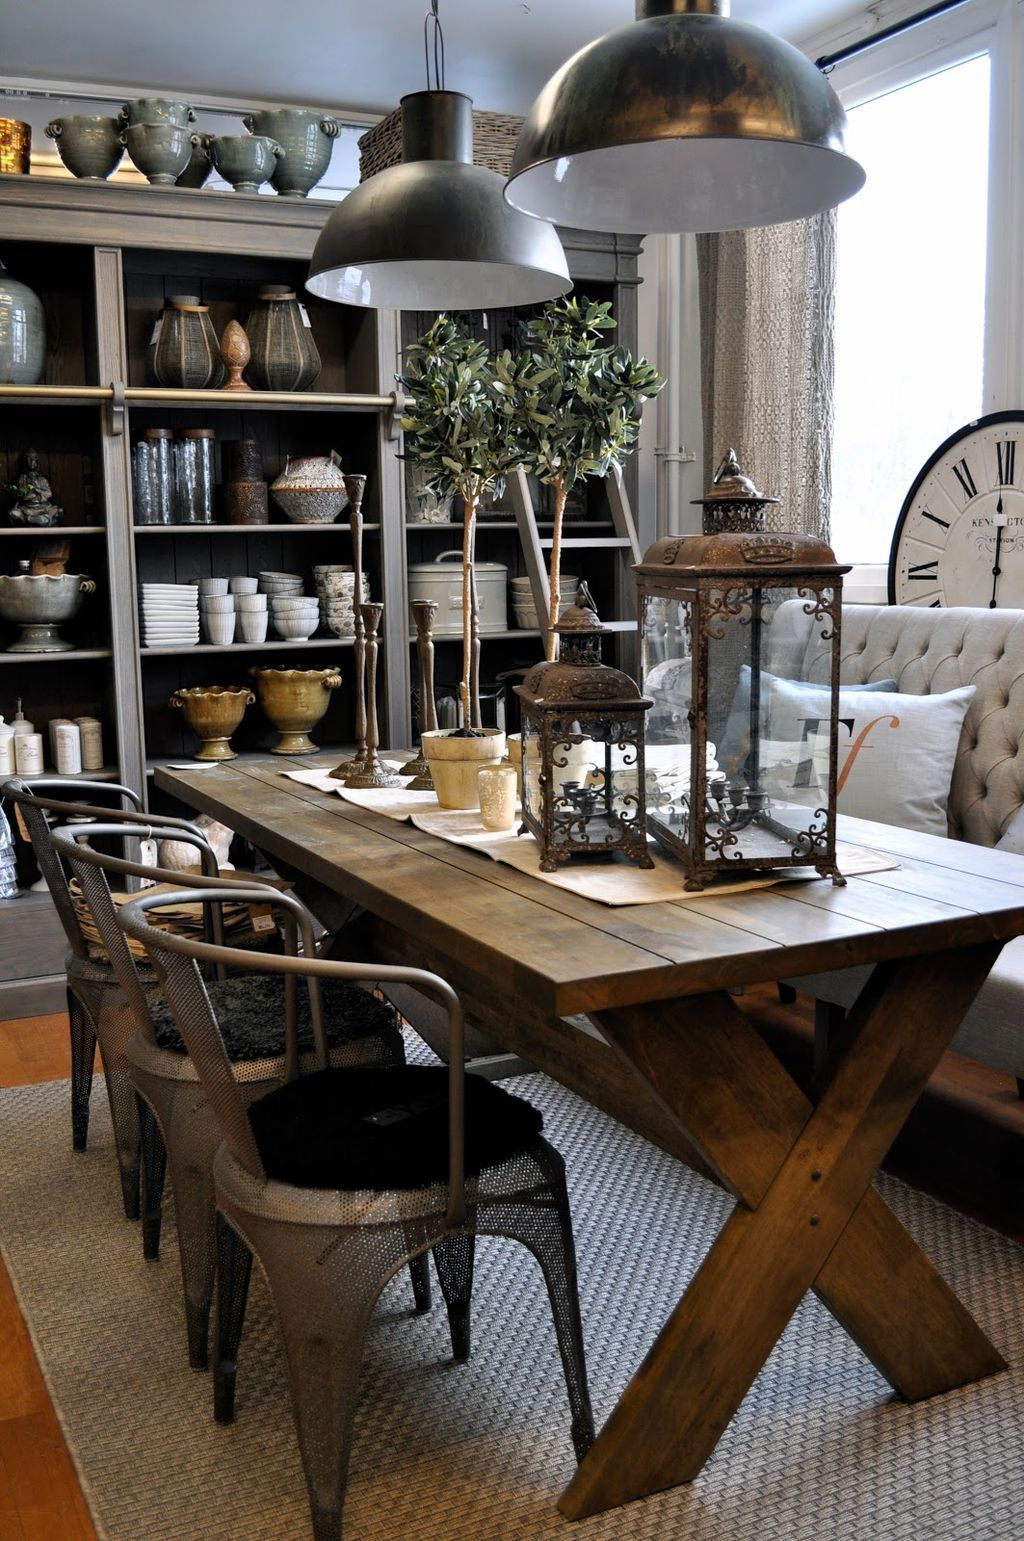 99 Modern Industrial Farmhouse Decoration IdeasHomeDecorish 99